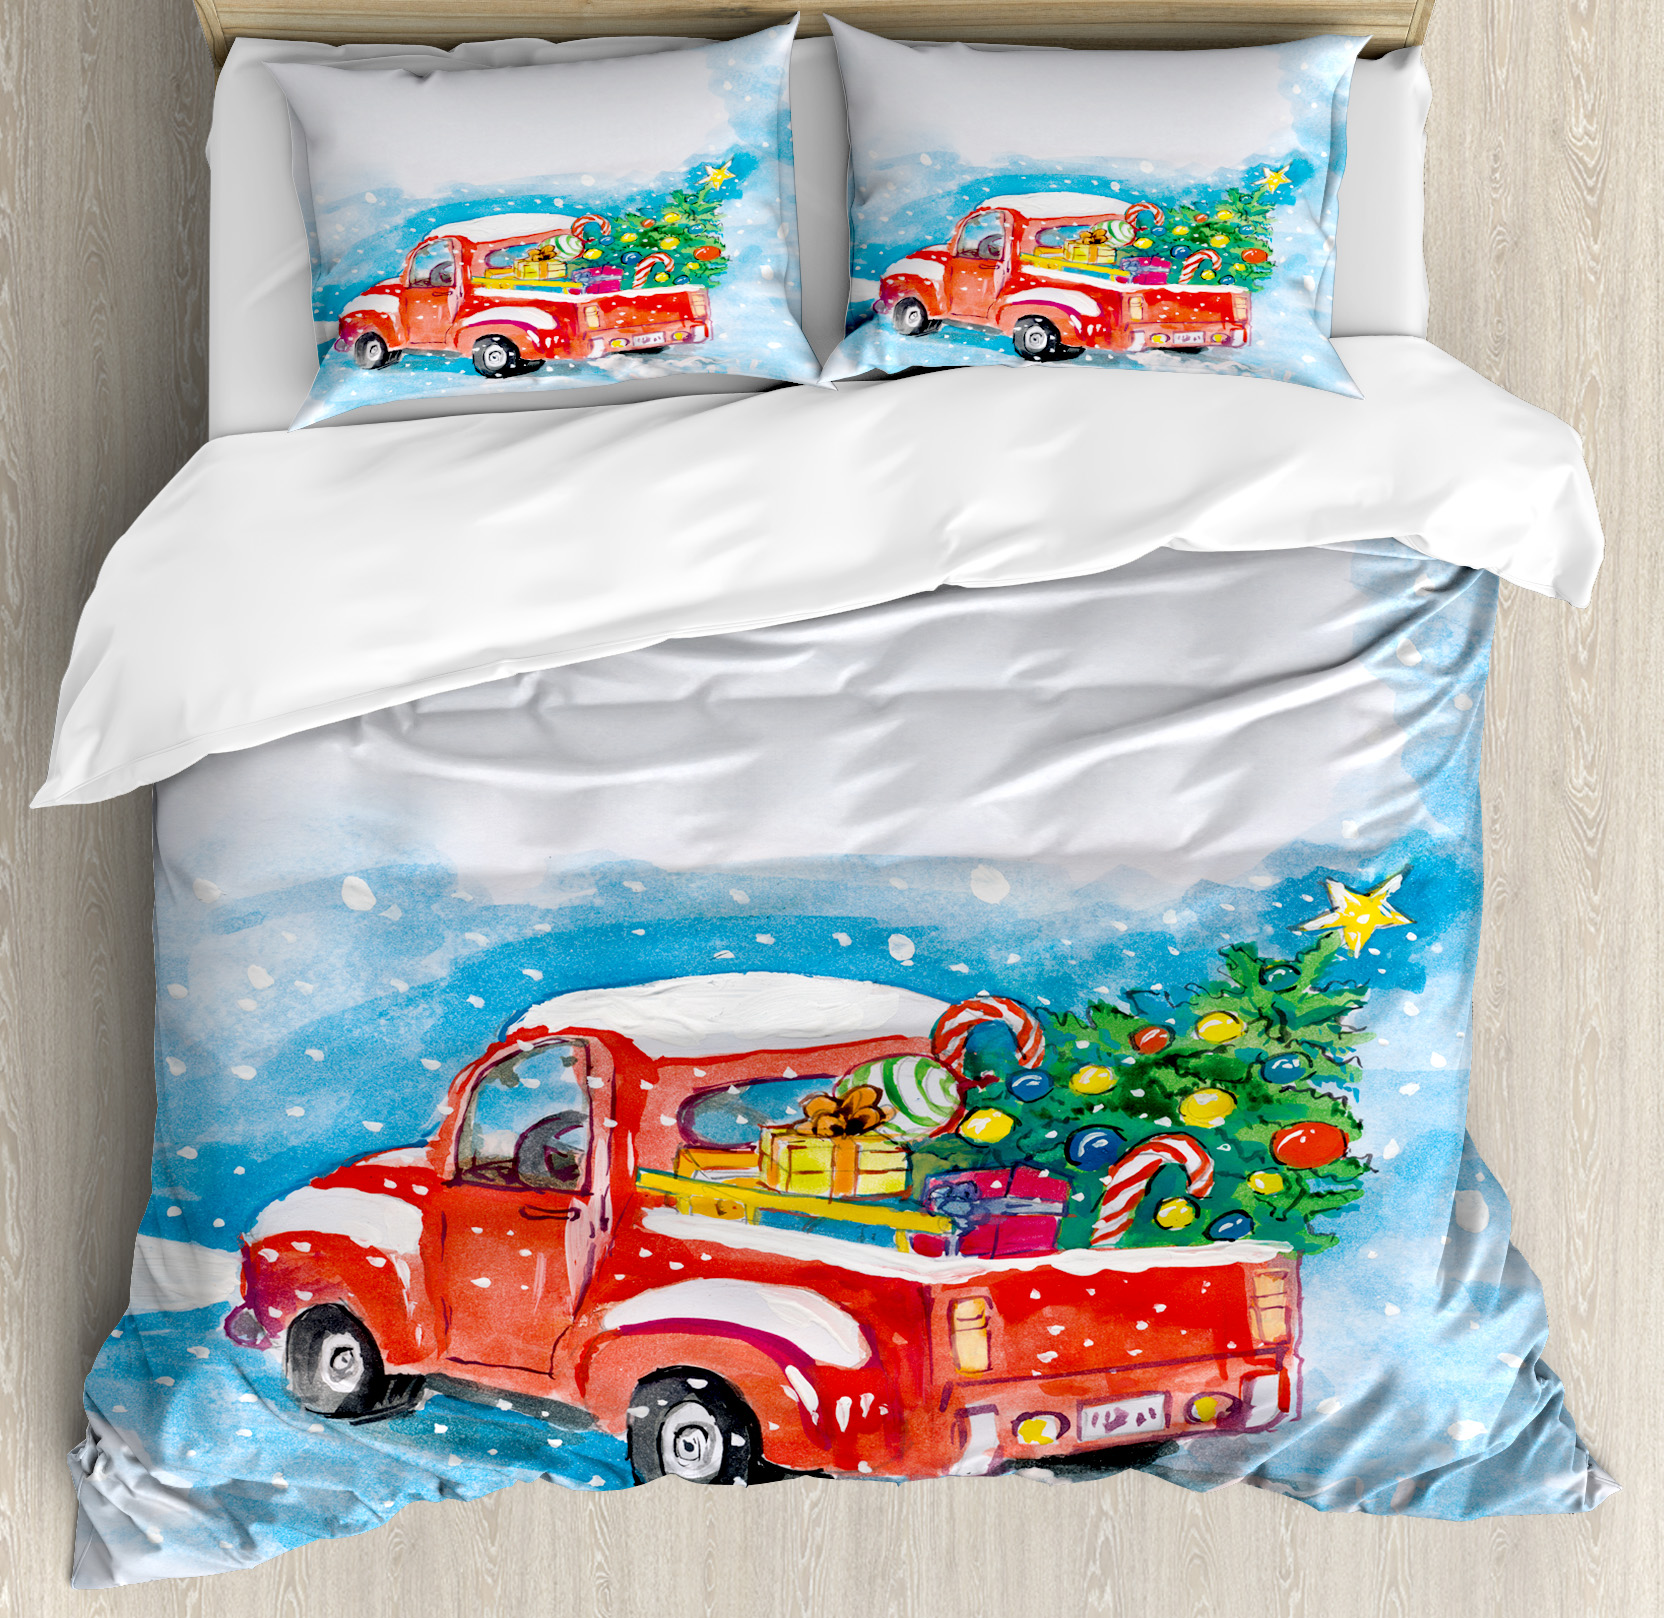 Christmas King Size Duvet Cover Set, Vintage Red Truck in Snowy Winter Scene with Tree and... by Kozmos